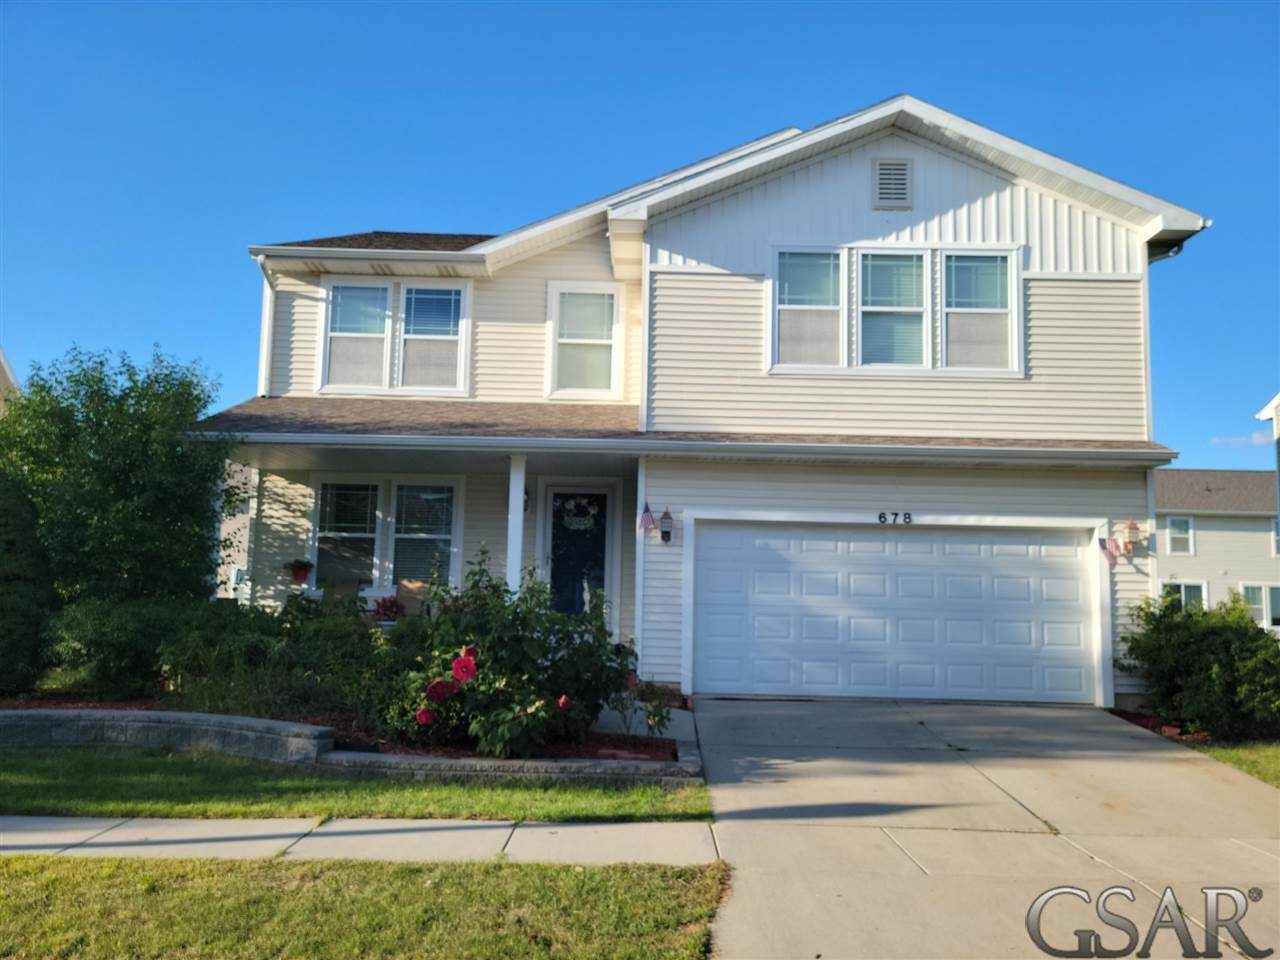 678 Puffin Pl - Photo 1